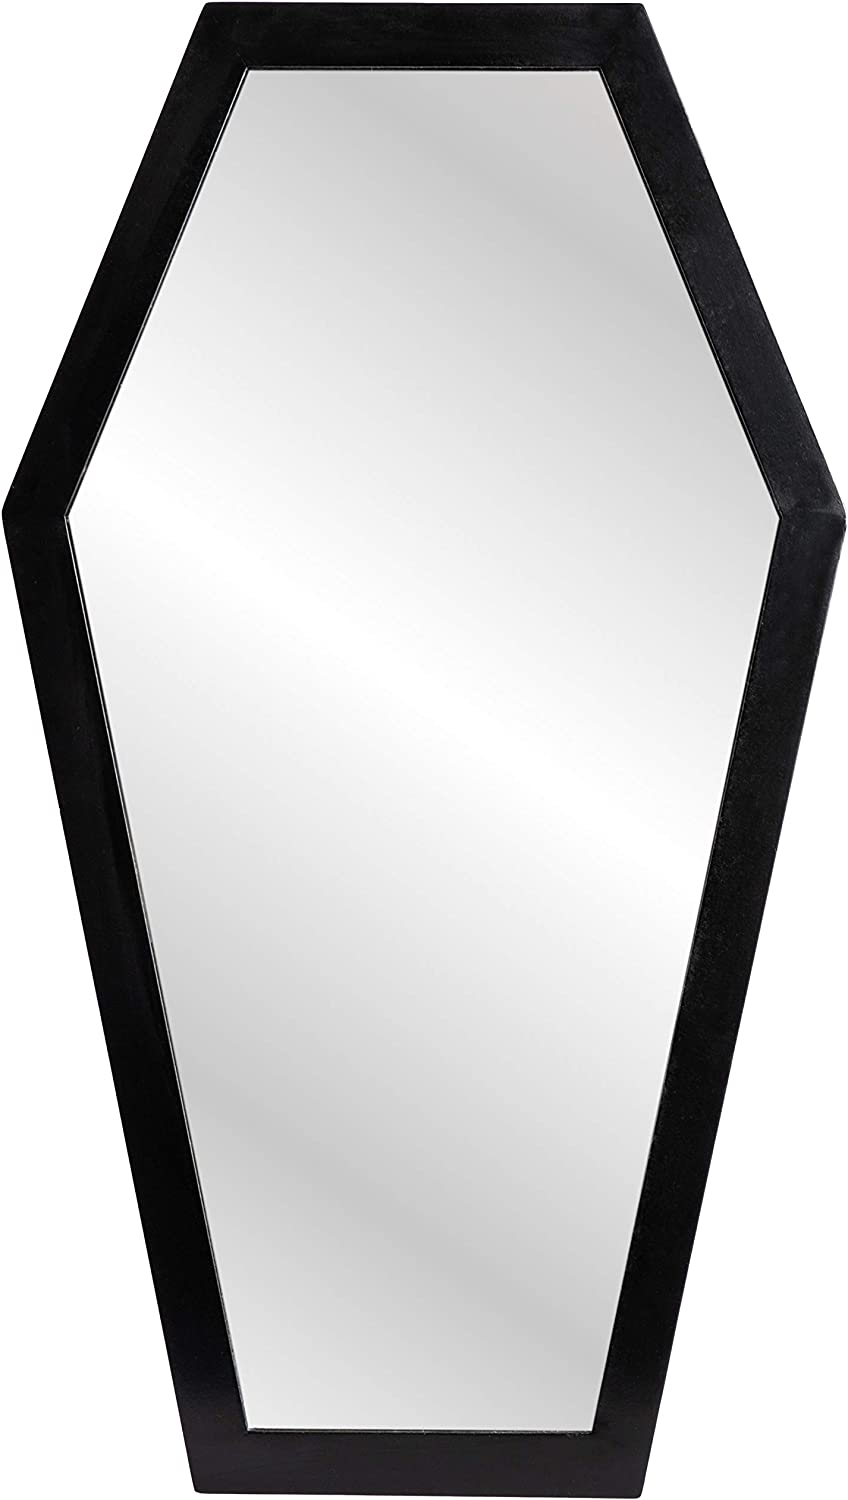 Gothic Curiosities Large Coffin Mirror - 23 Inch Gothic Decor for Bedroom Or Bathroom - Hooks and Hardware Included, Ready to Hang - Pair with Spooky Goth Coffin, Moon Shelf